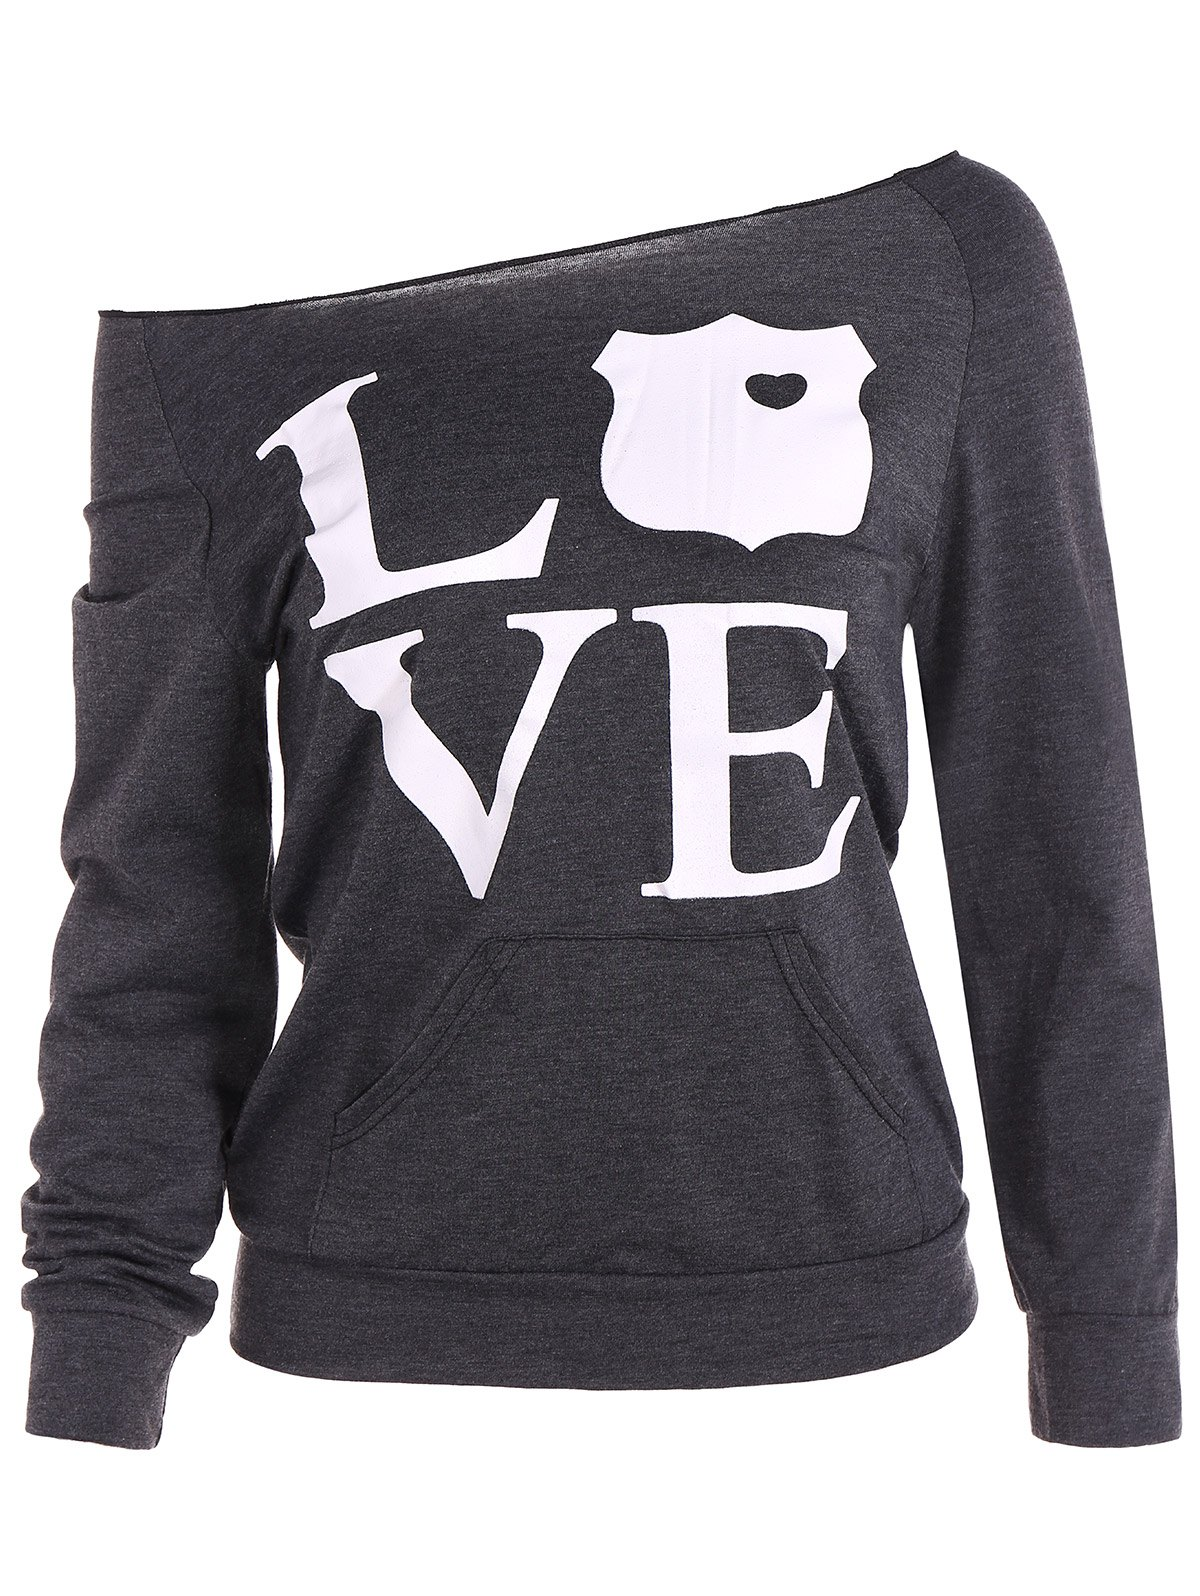 Skew Neck Love Sweatshirt